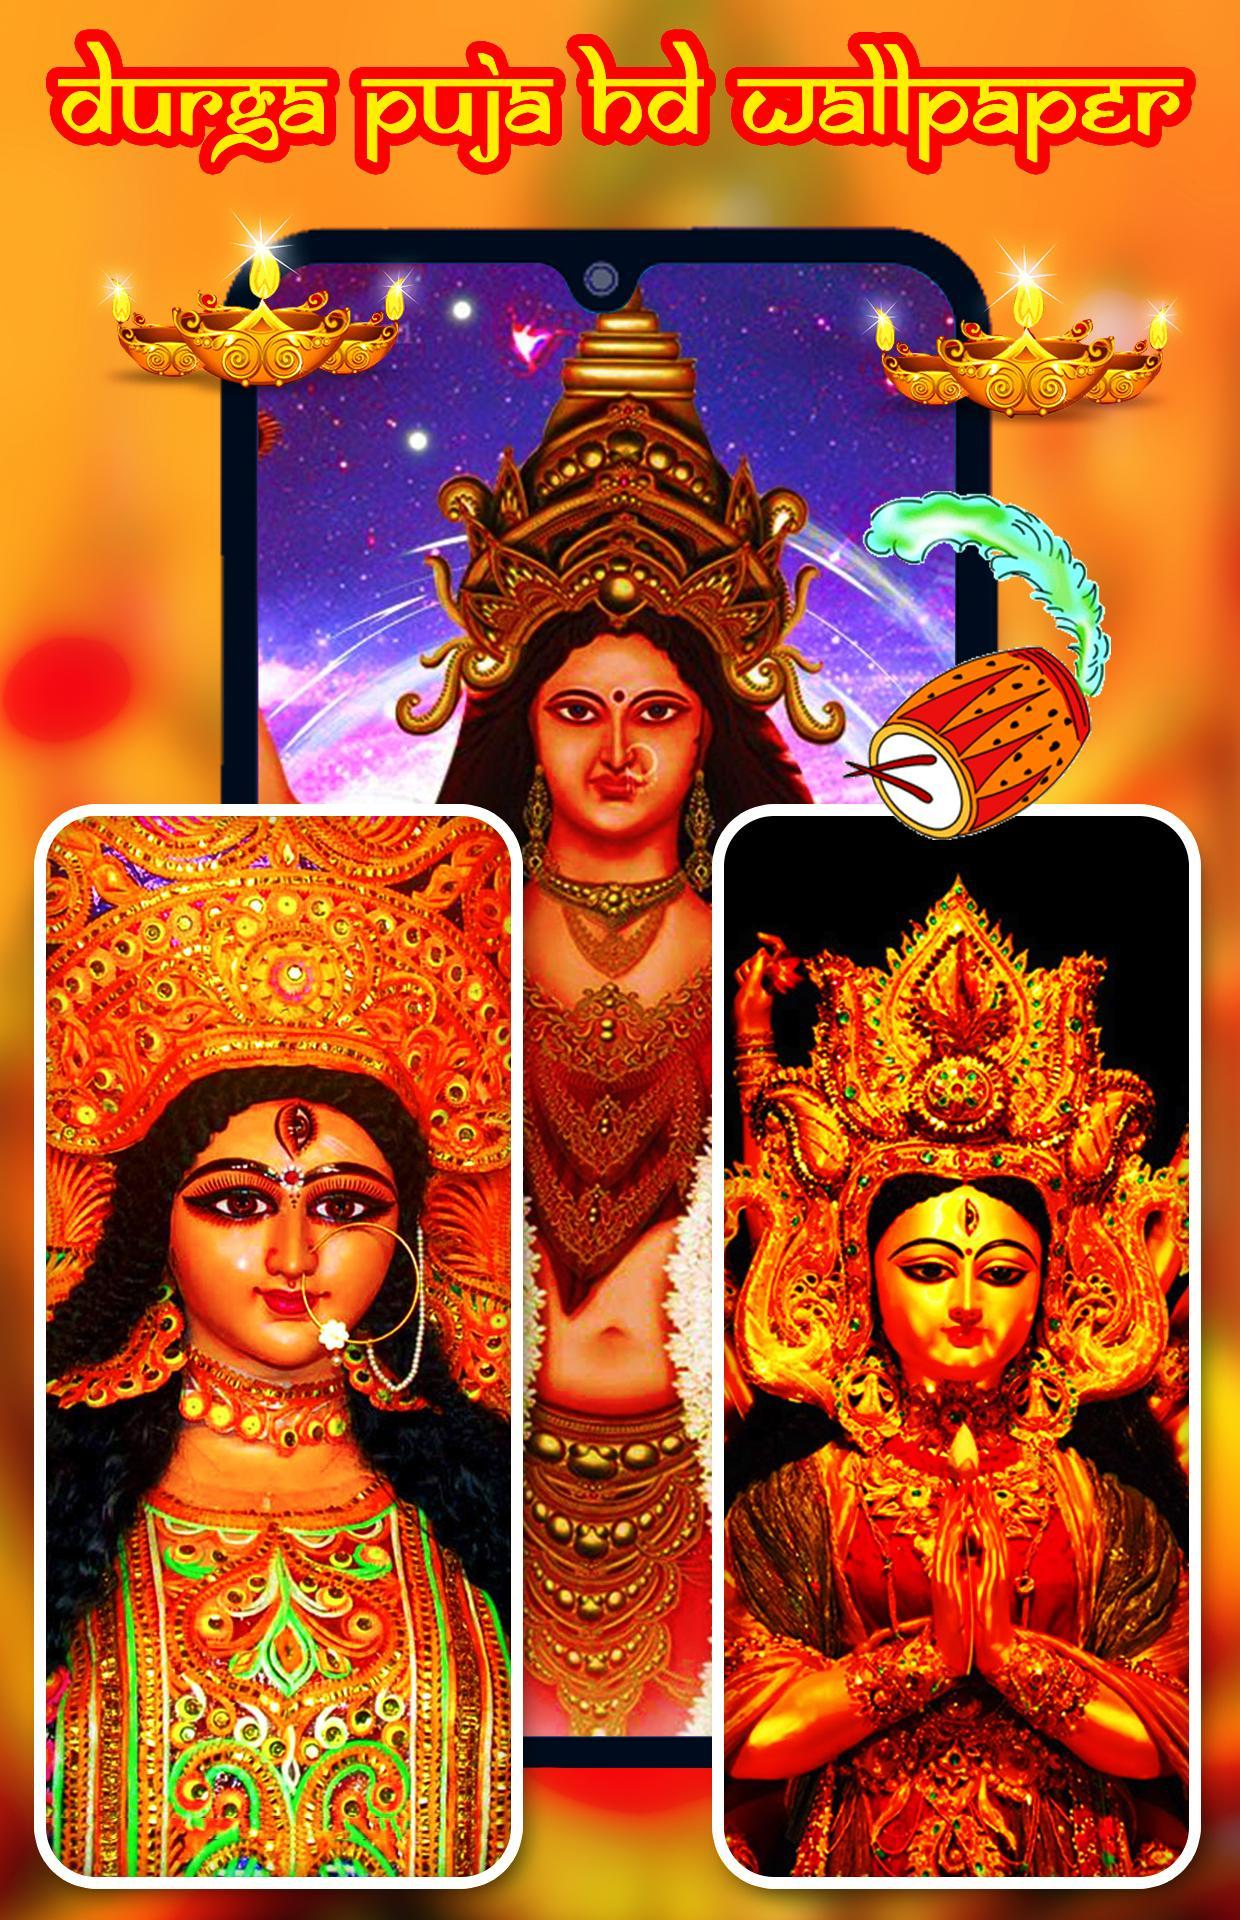 Durga Puja Wallpaper For Android Apk Download